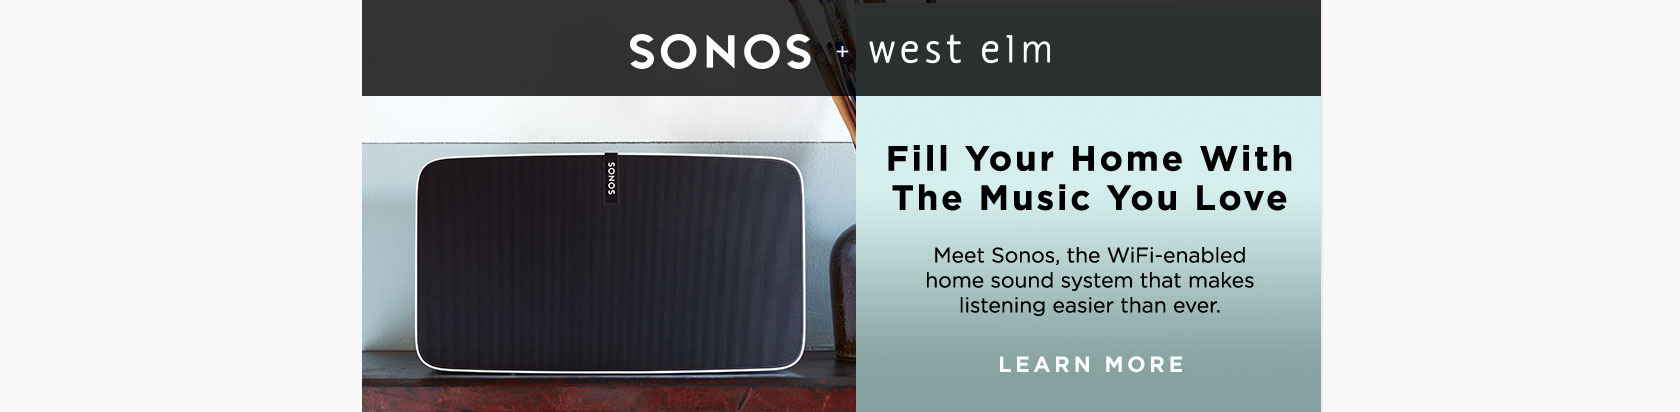 Sonos + west elm - Fill Your Home With The Music You Love.